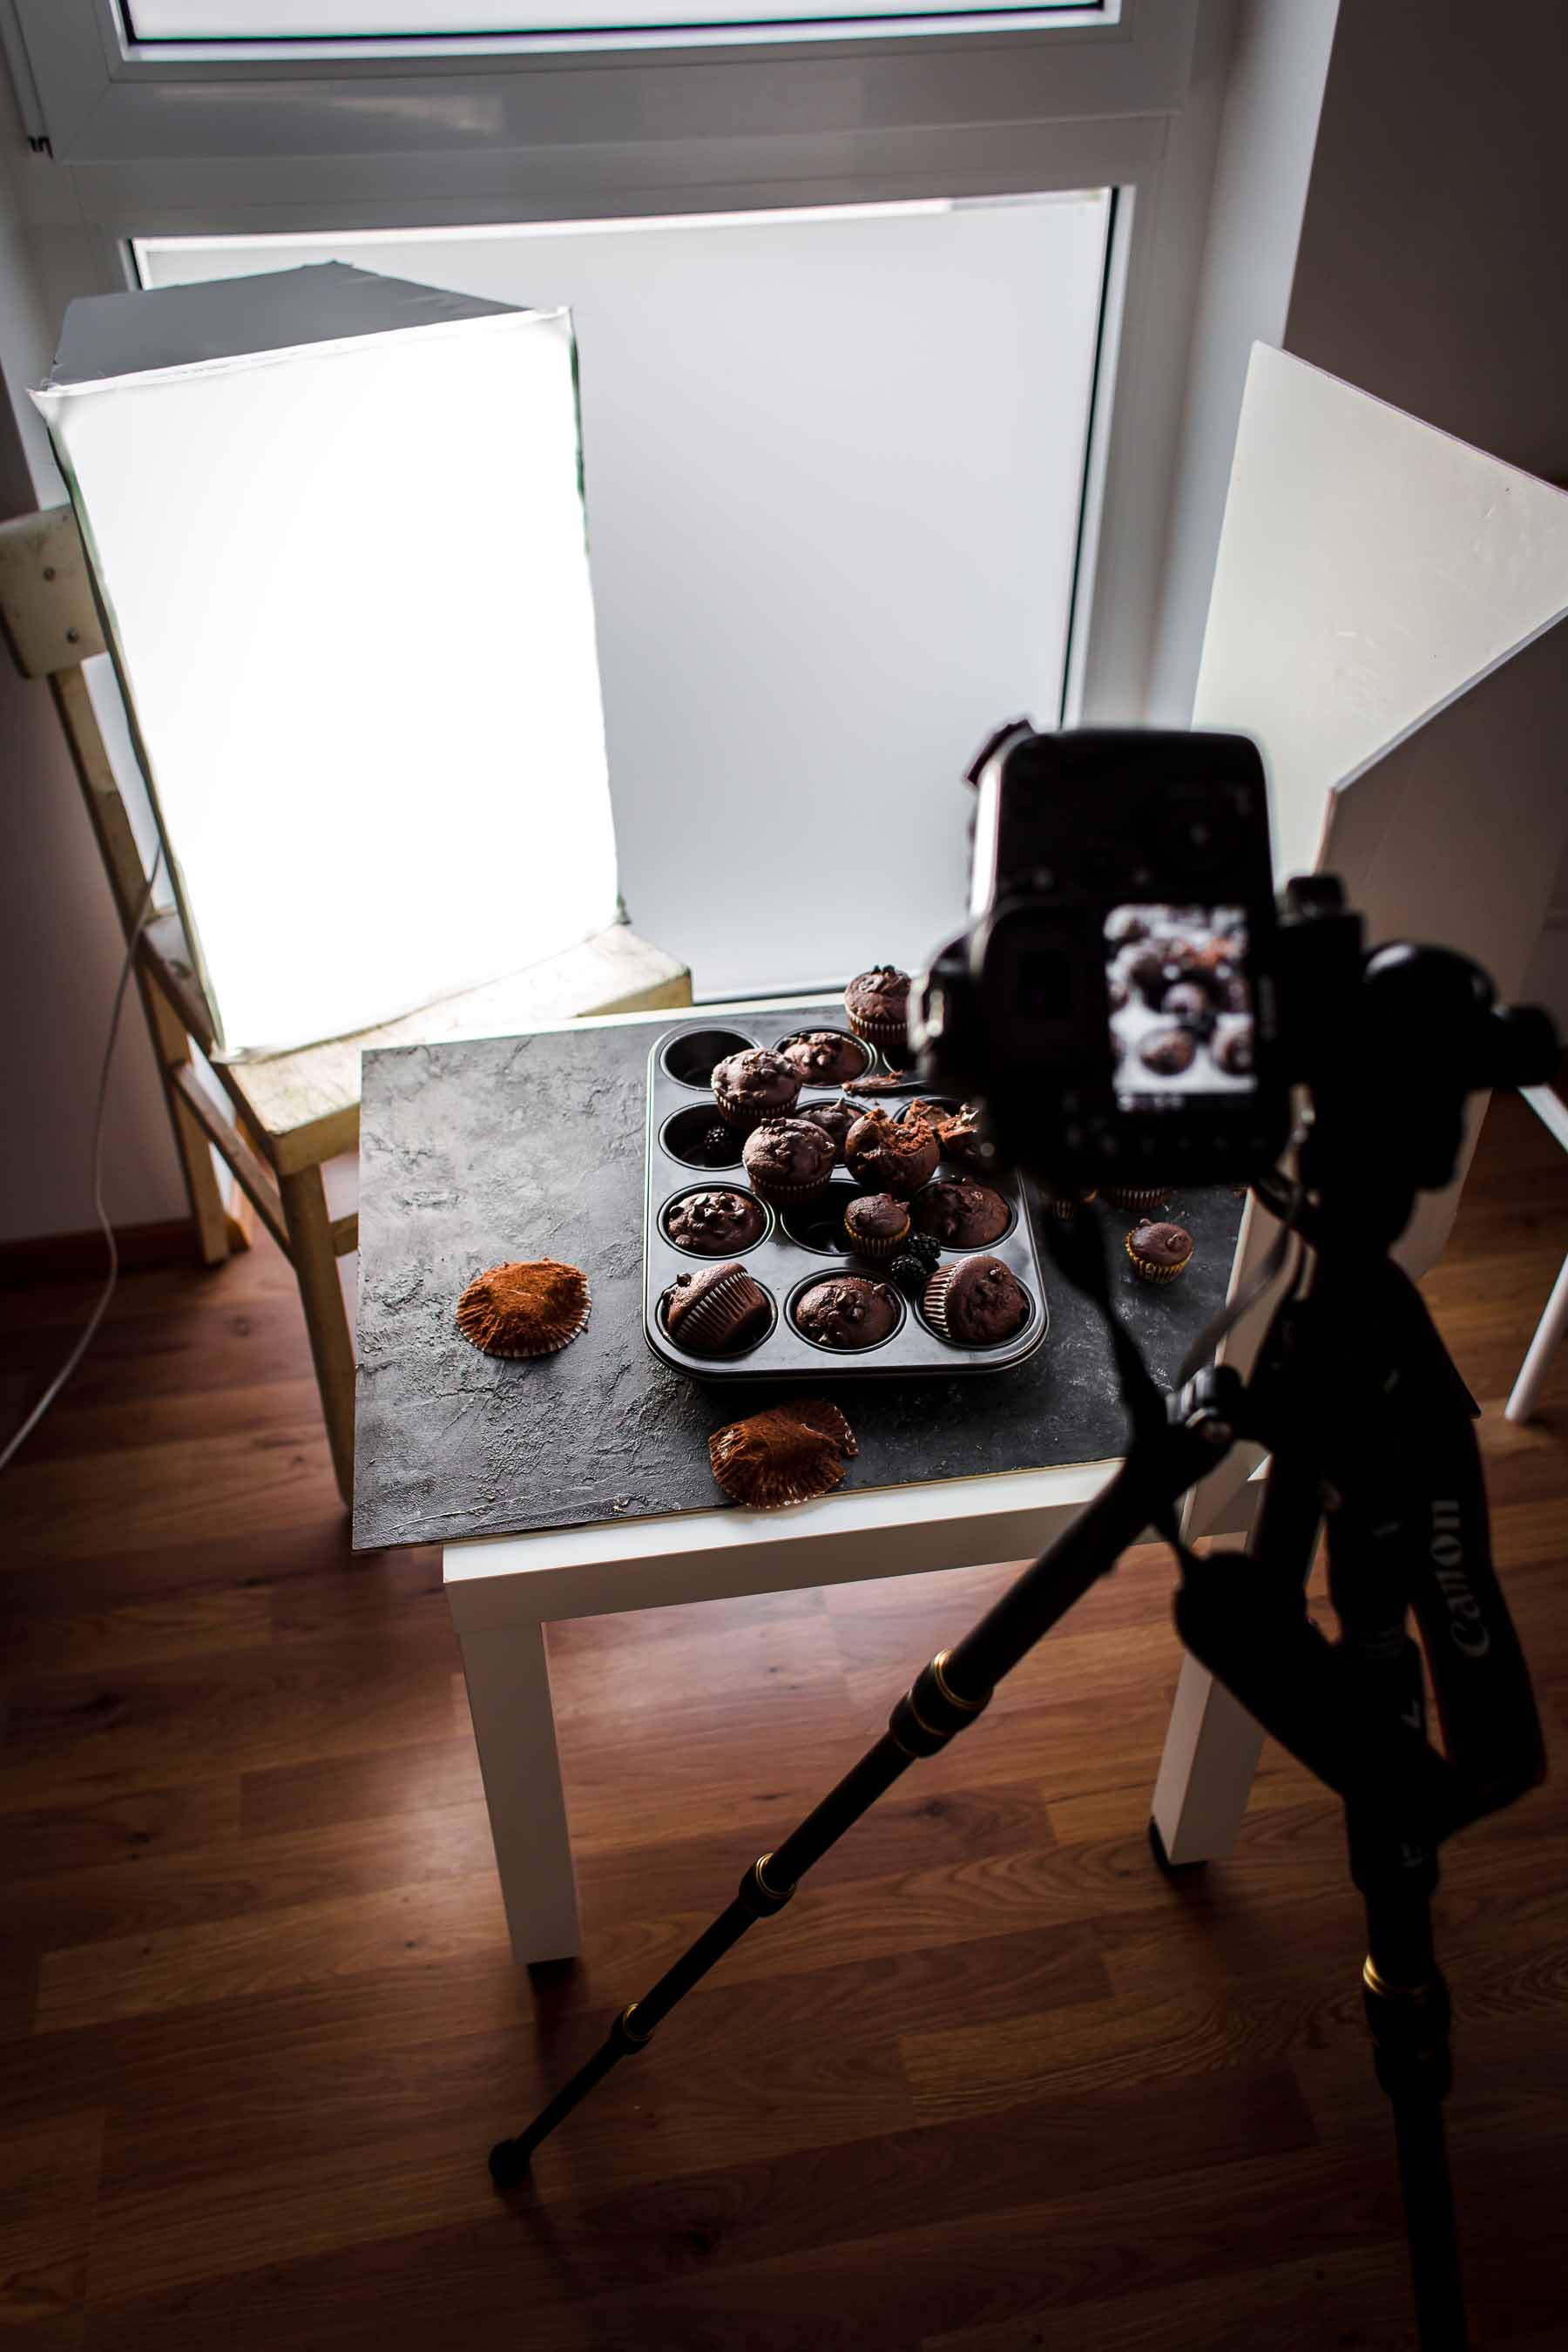 Food photography setup with artificial light